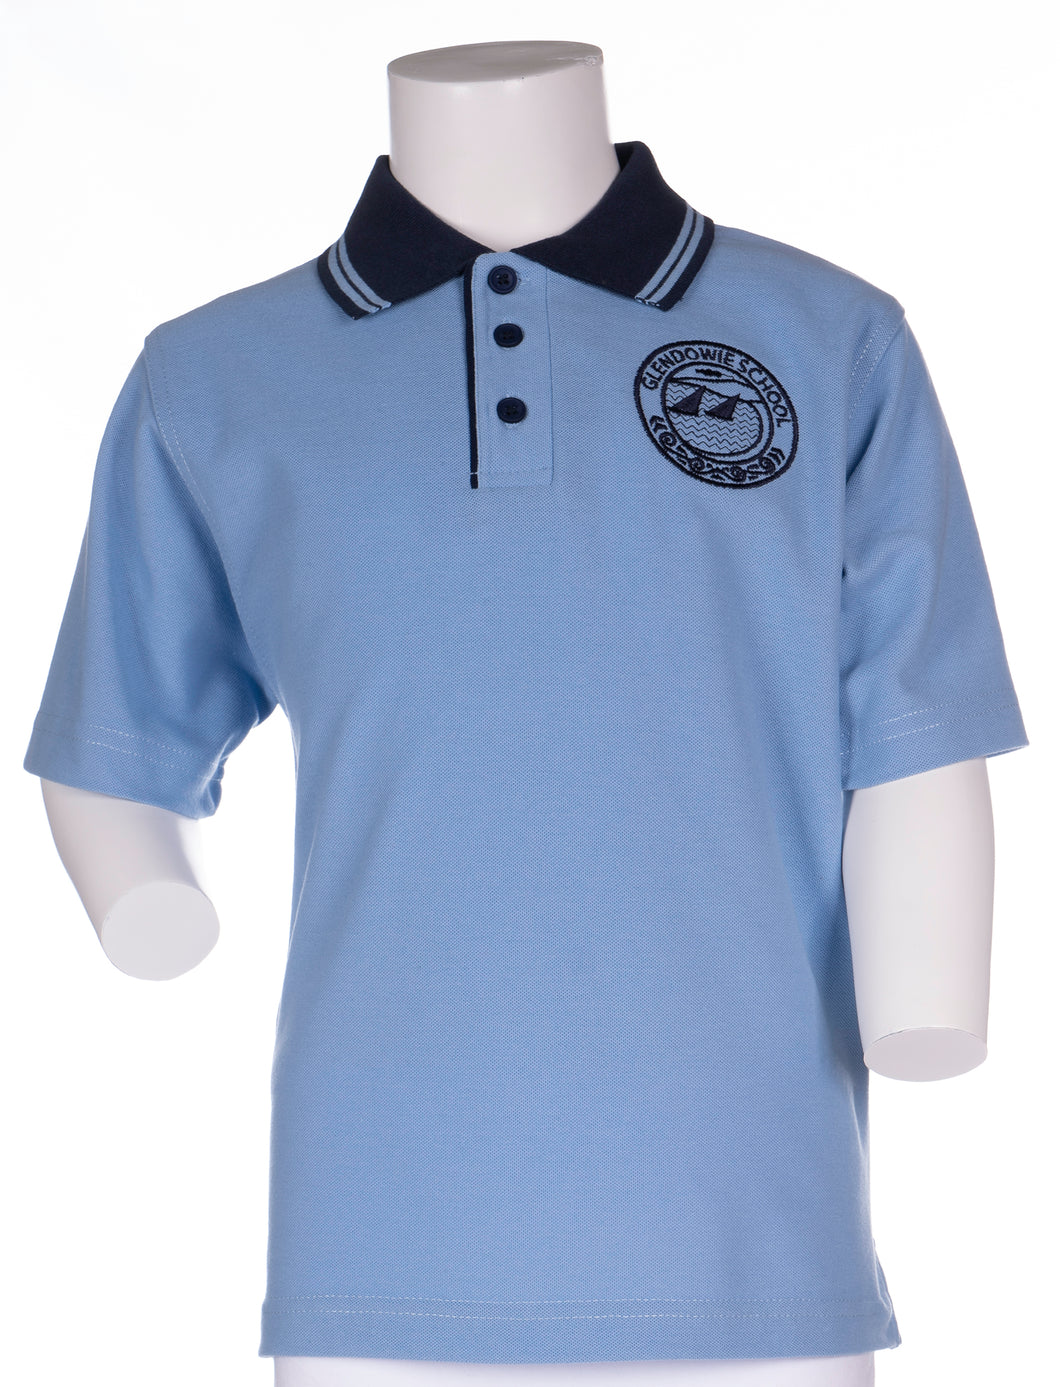 Glendowie School - Short Sleeve Polo Shirt